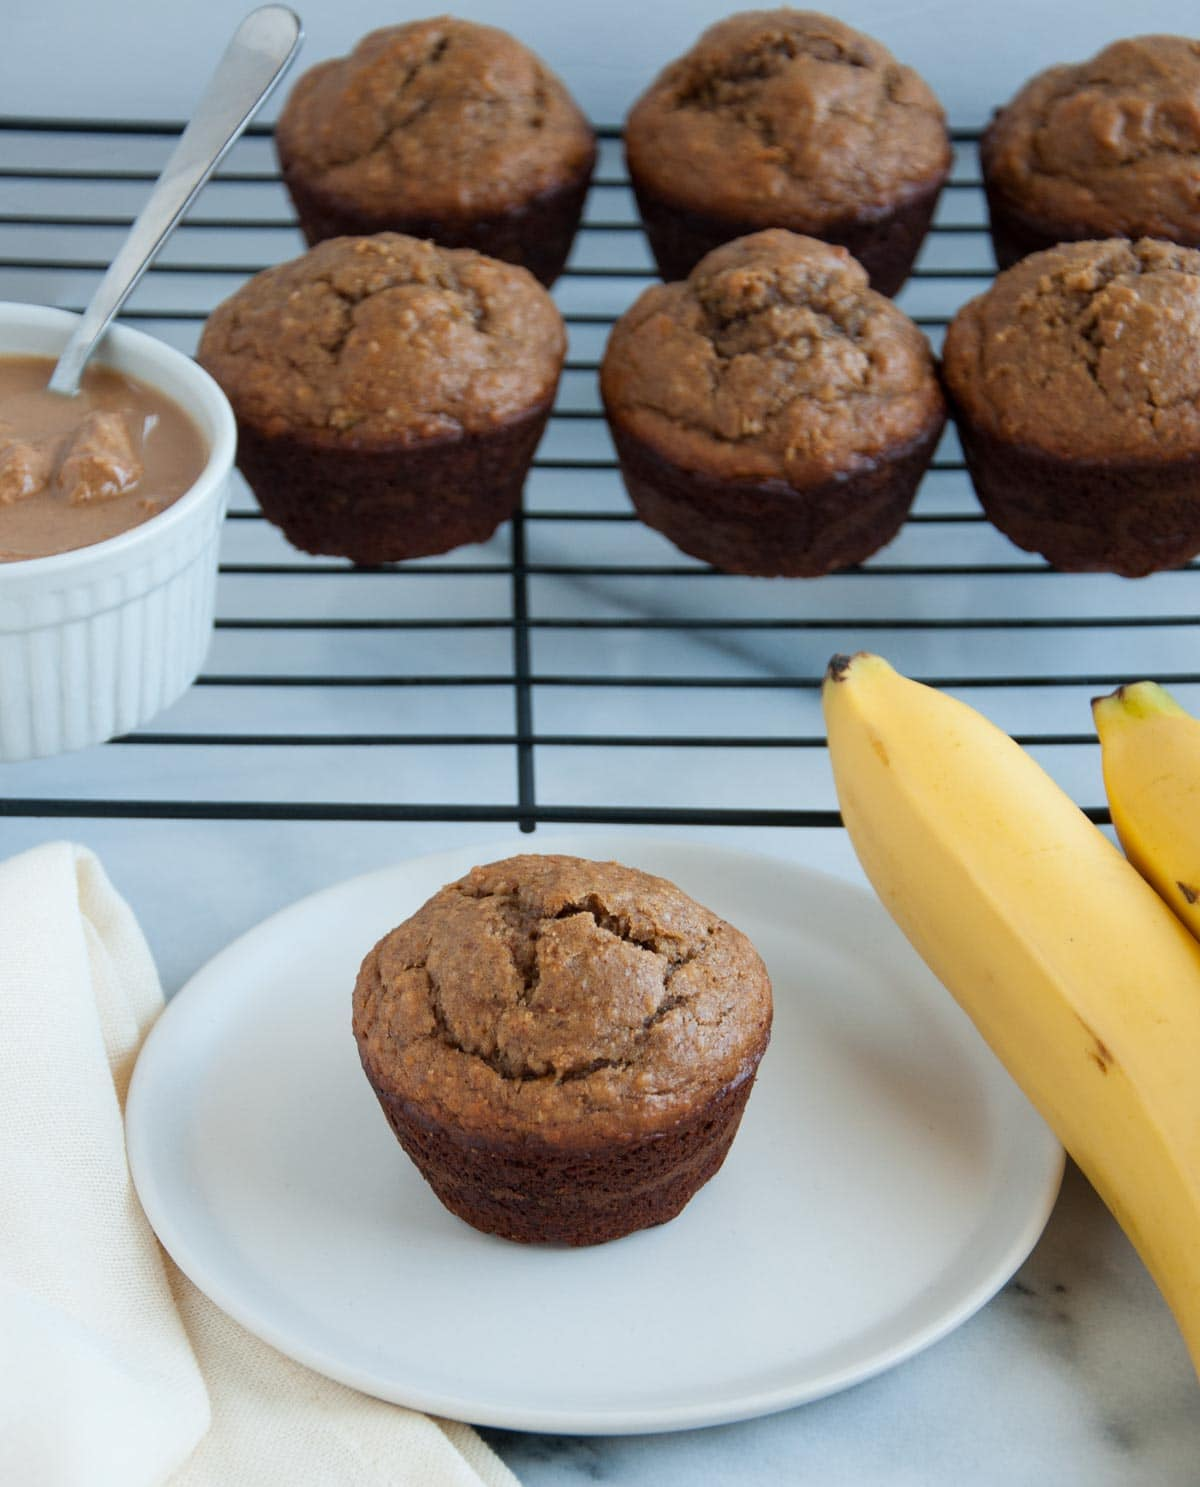 Peanut Butter Banana Muffins with Oat Flour - Feasting not Fasting